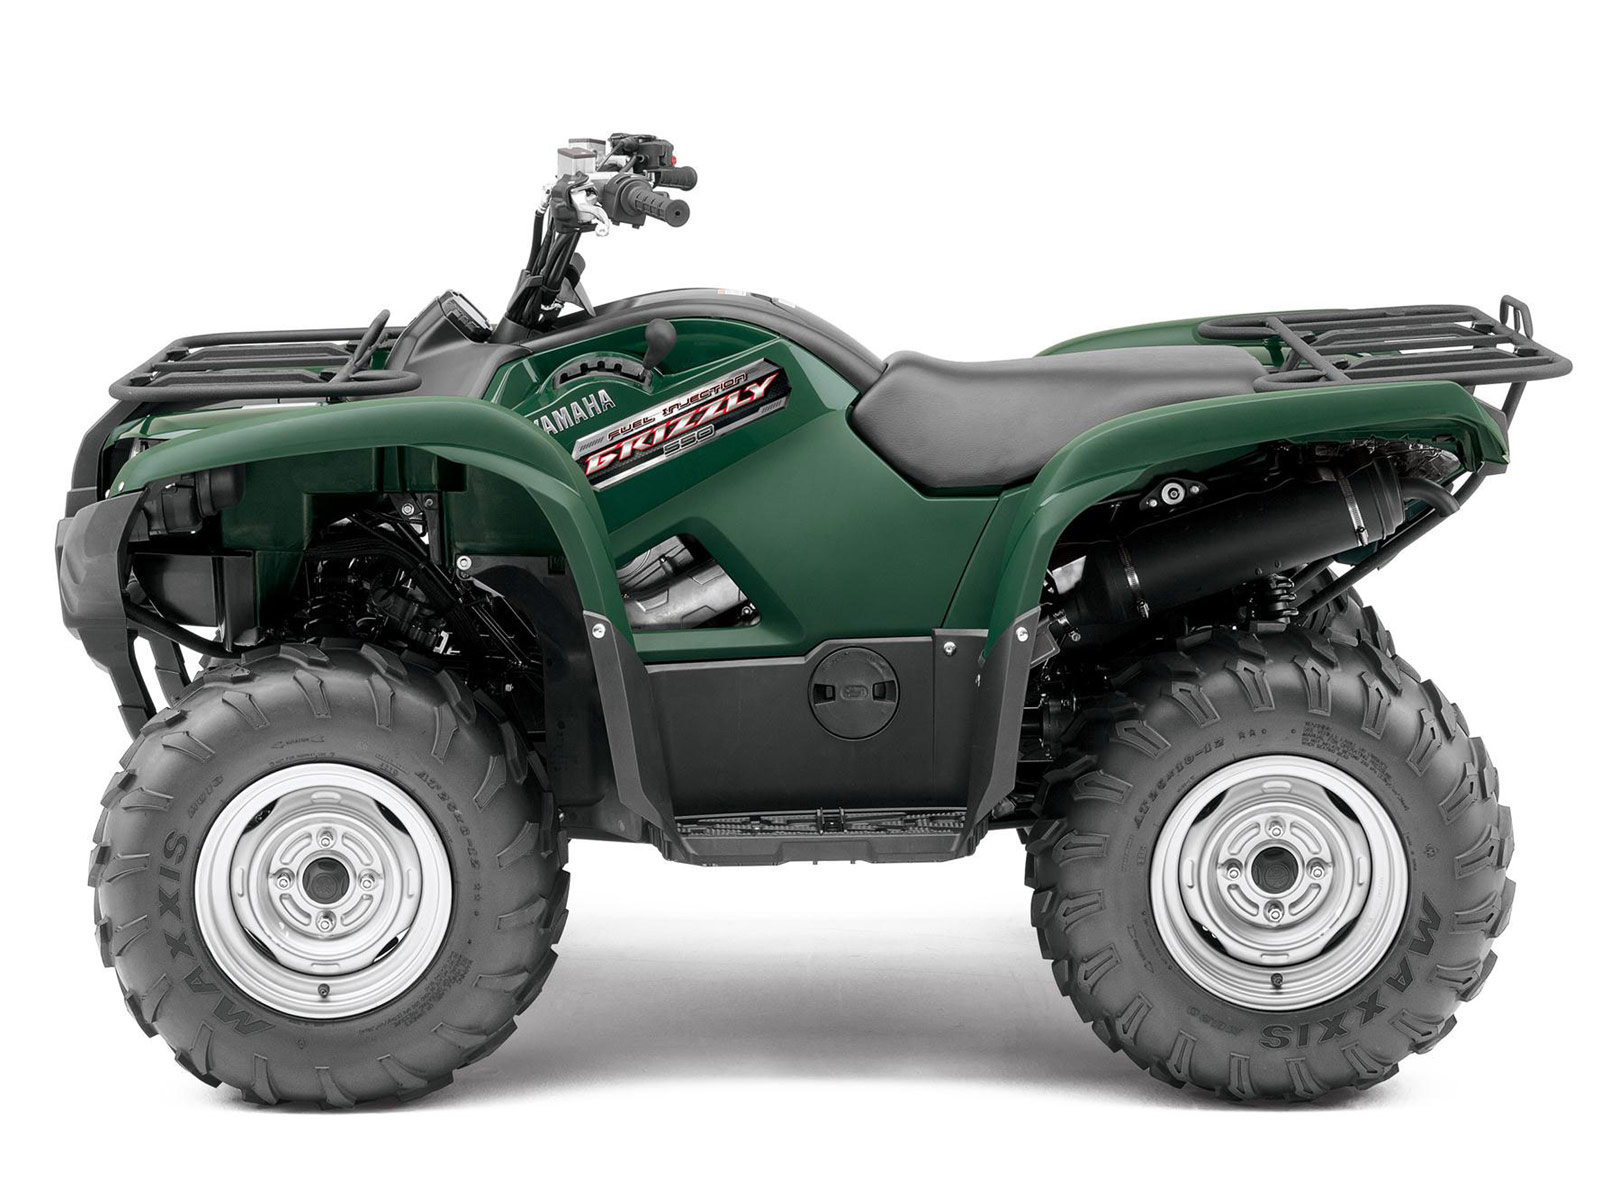 2013 grizzly 550 fi auto 4x4 yamaha atv pictures specs